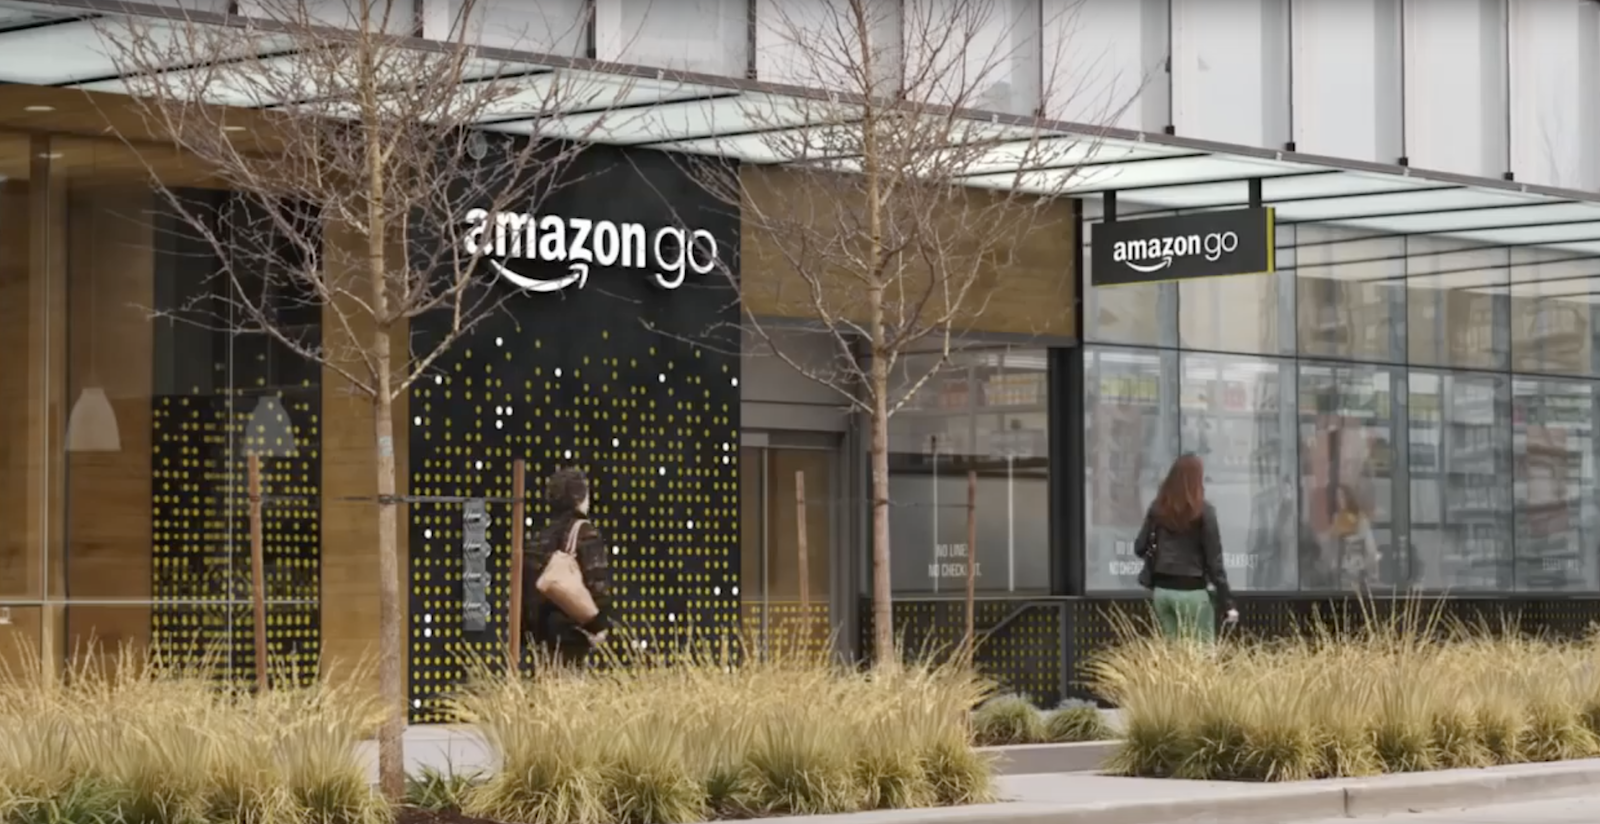 techcrunch.com - Romain Dillet - Amazon could launch Amazon Go store in London